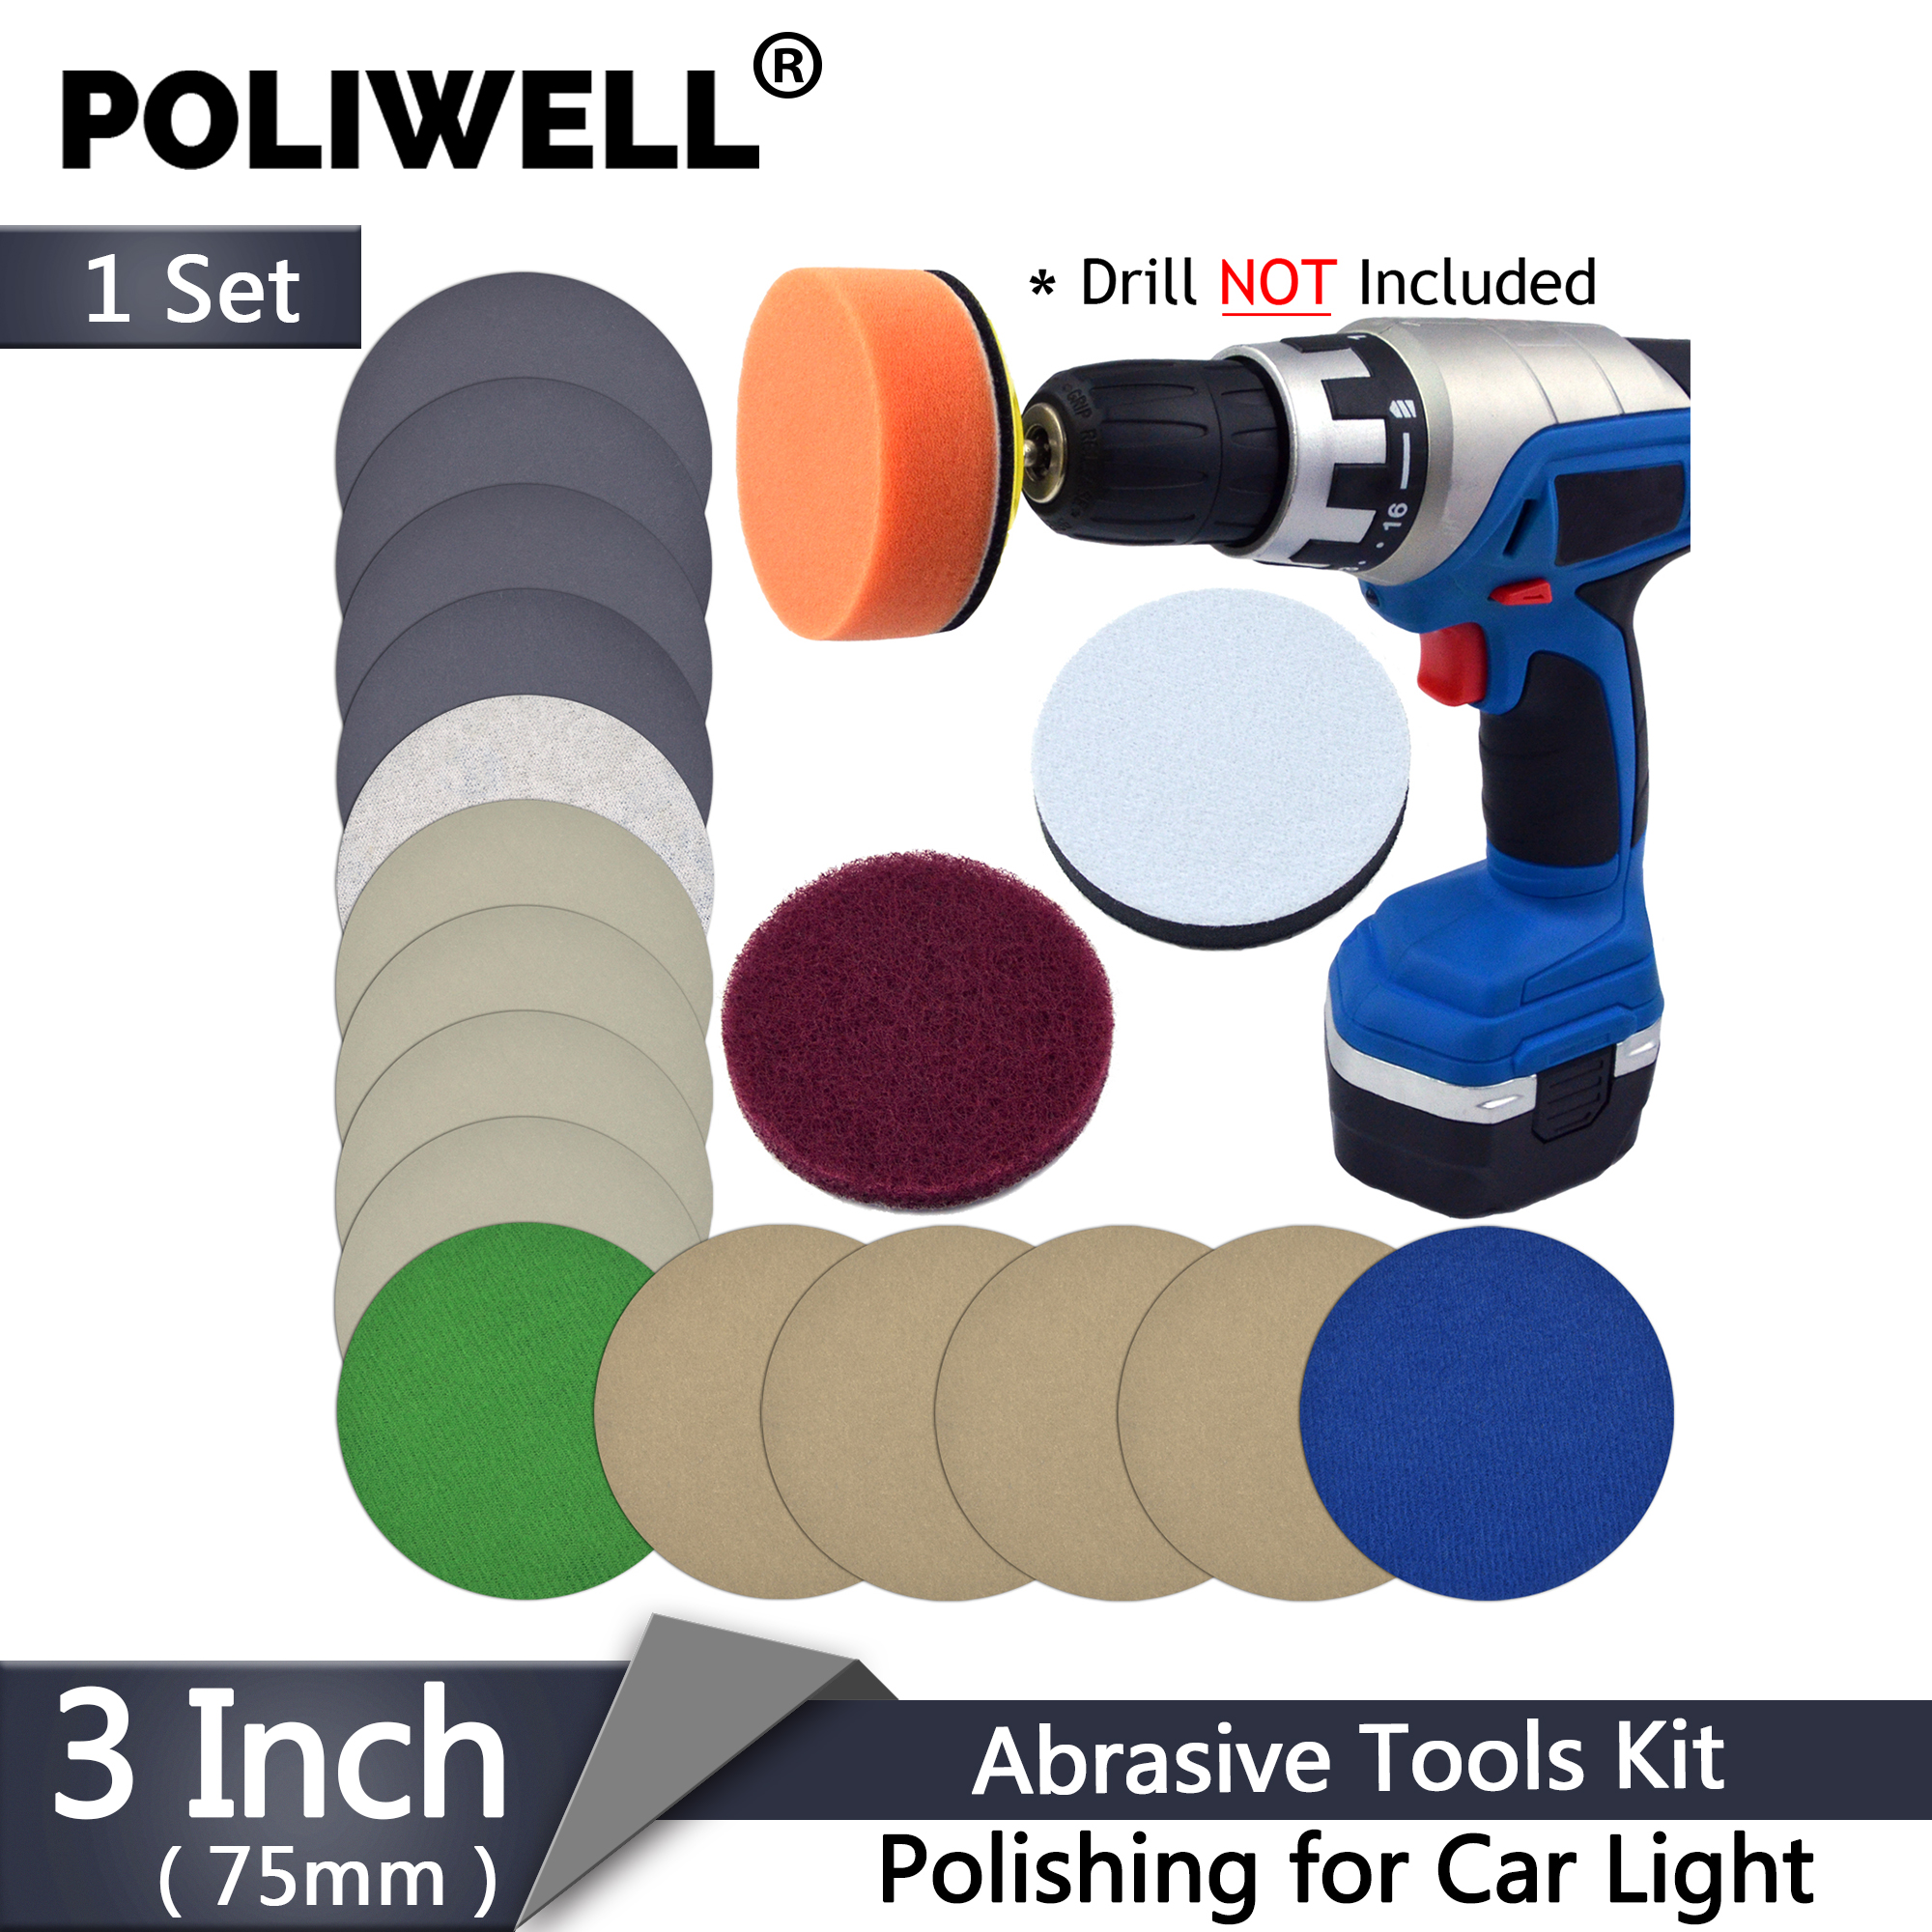 POLIWELL 3 Inch Automotive Polishing Set Car Headlight Restoration Kit Light Repair Sandpaper Sponge Cleaning Pads Fits Dremel